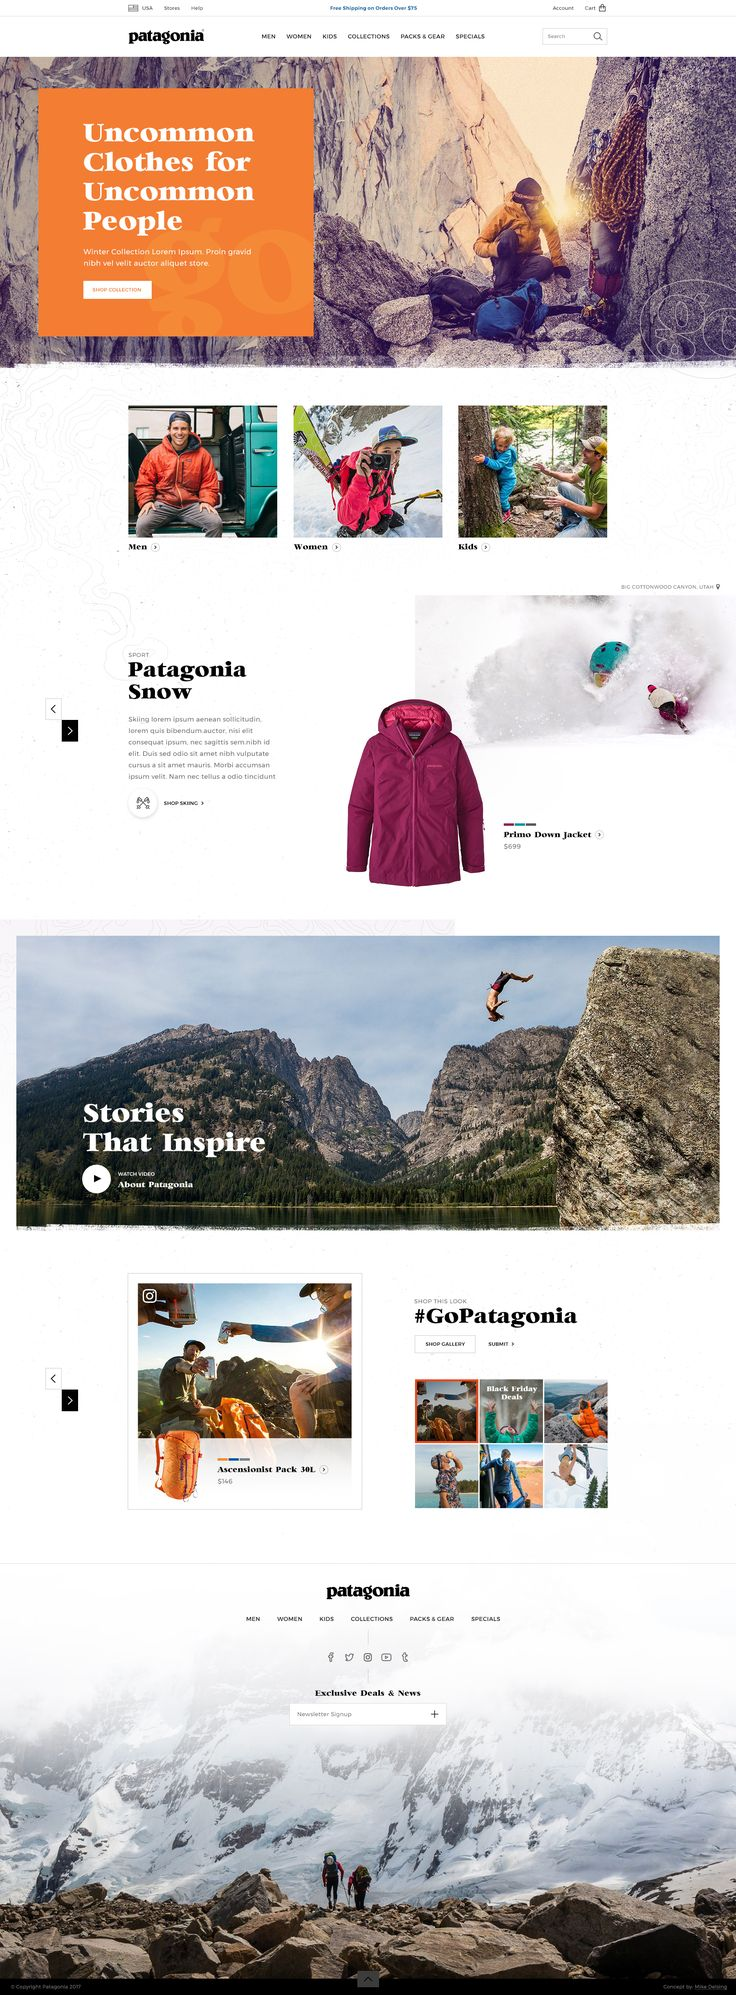 Patagonia Website Design Concept by: Mike Delsing